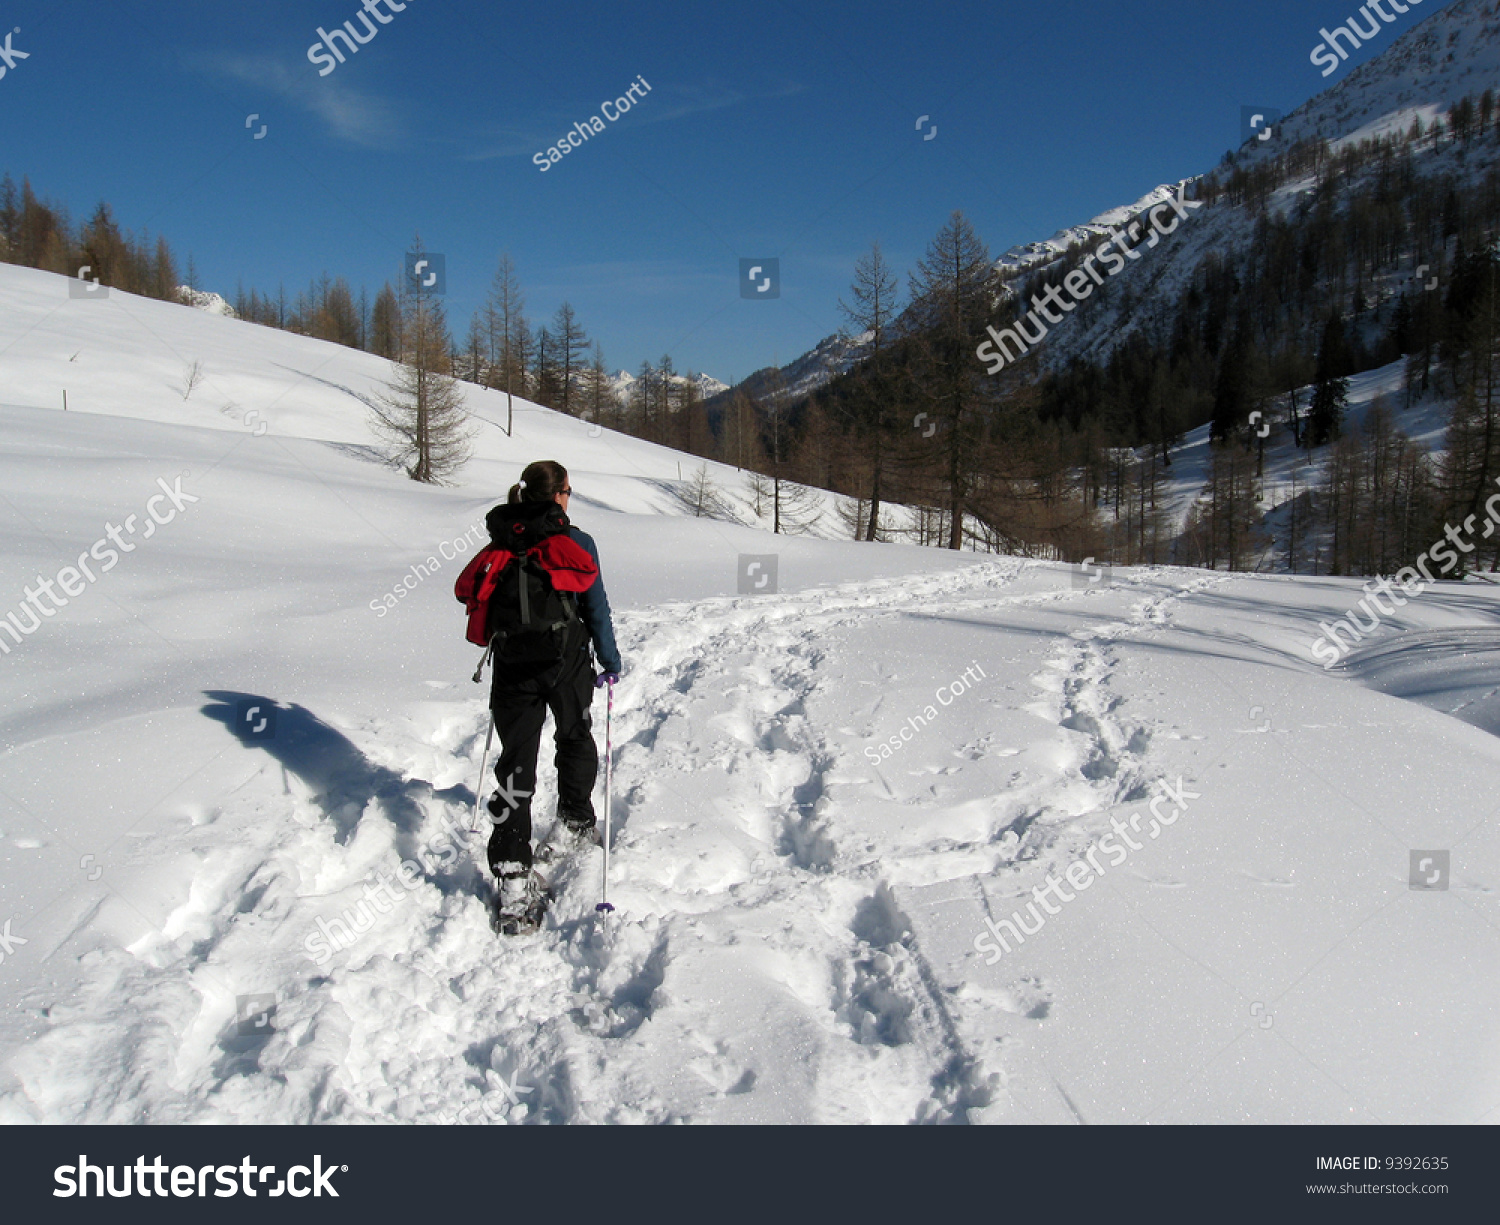 Do Snow Shoes Fit All Sizes